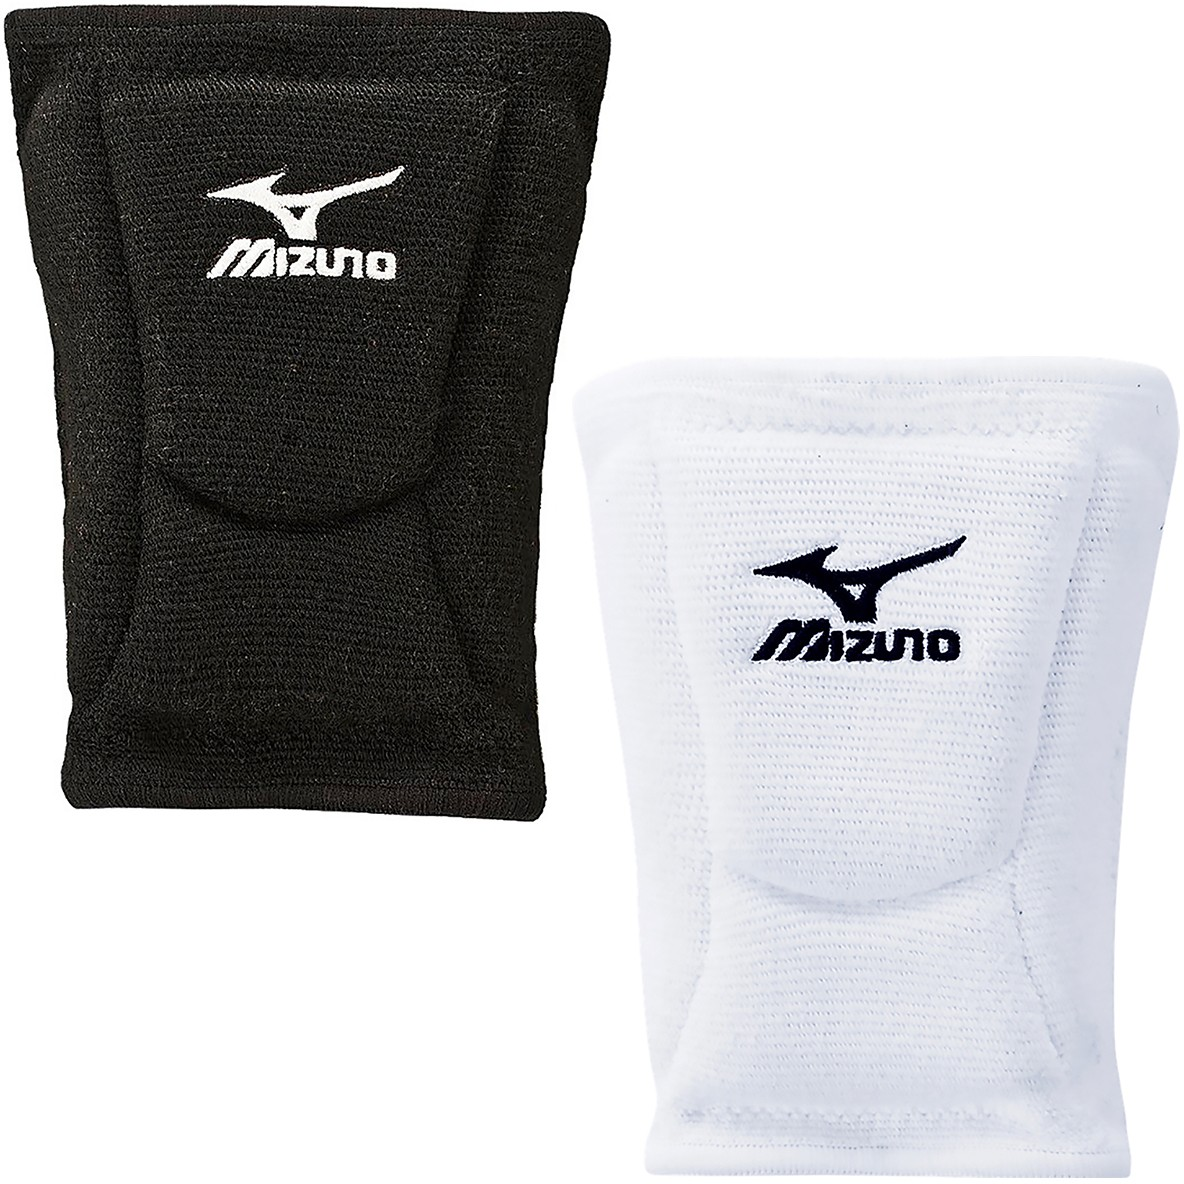 Lr 6 Mizuno Lr6 Volleyball Knee Pads